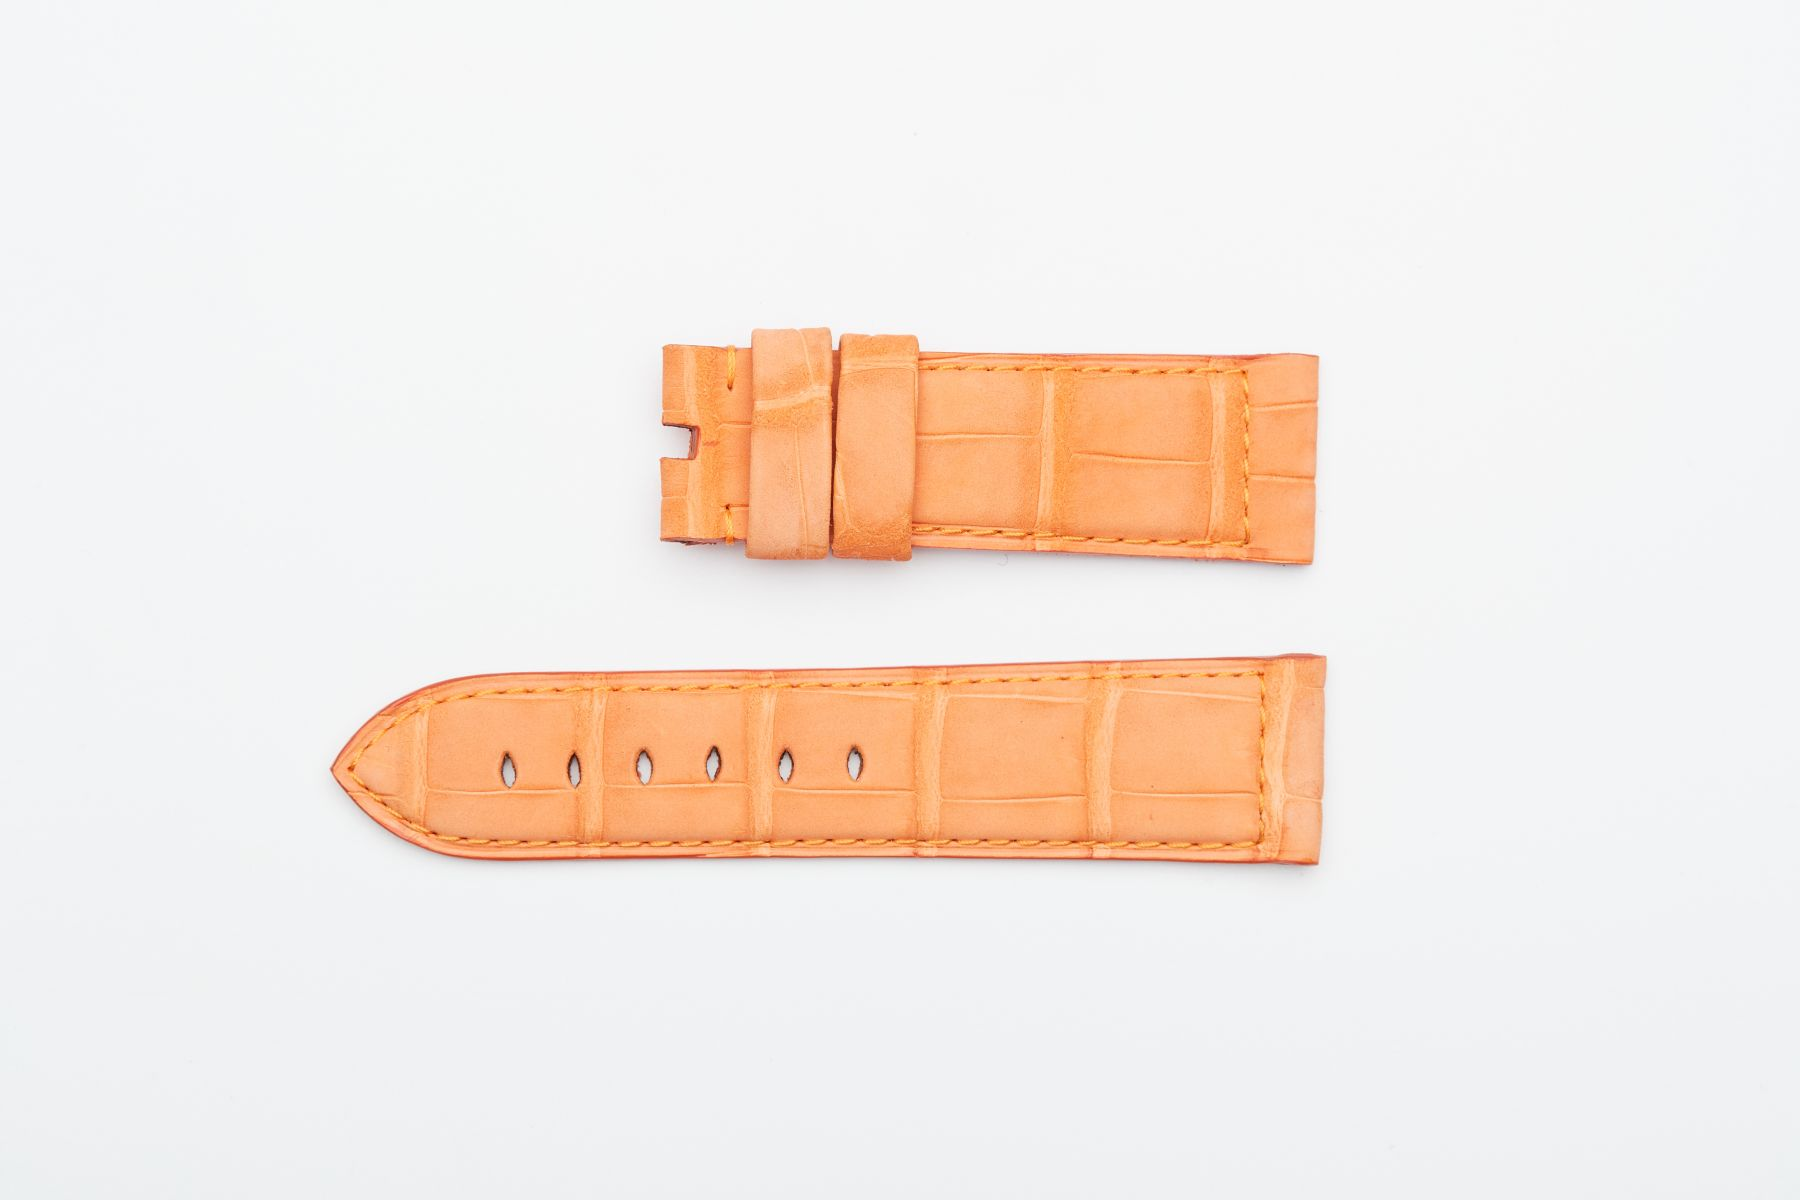 Orange Suede Nubuck Alligator strap 24mm Panerai style